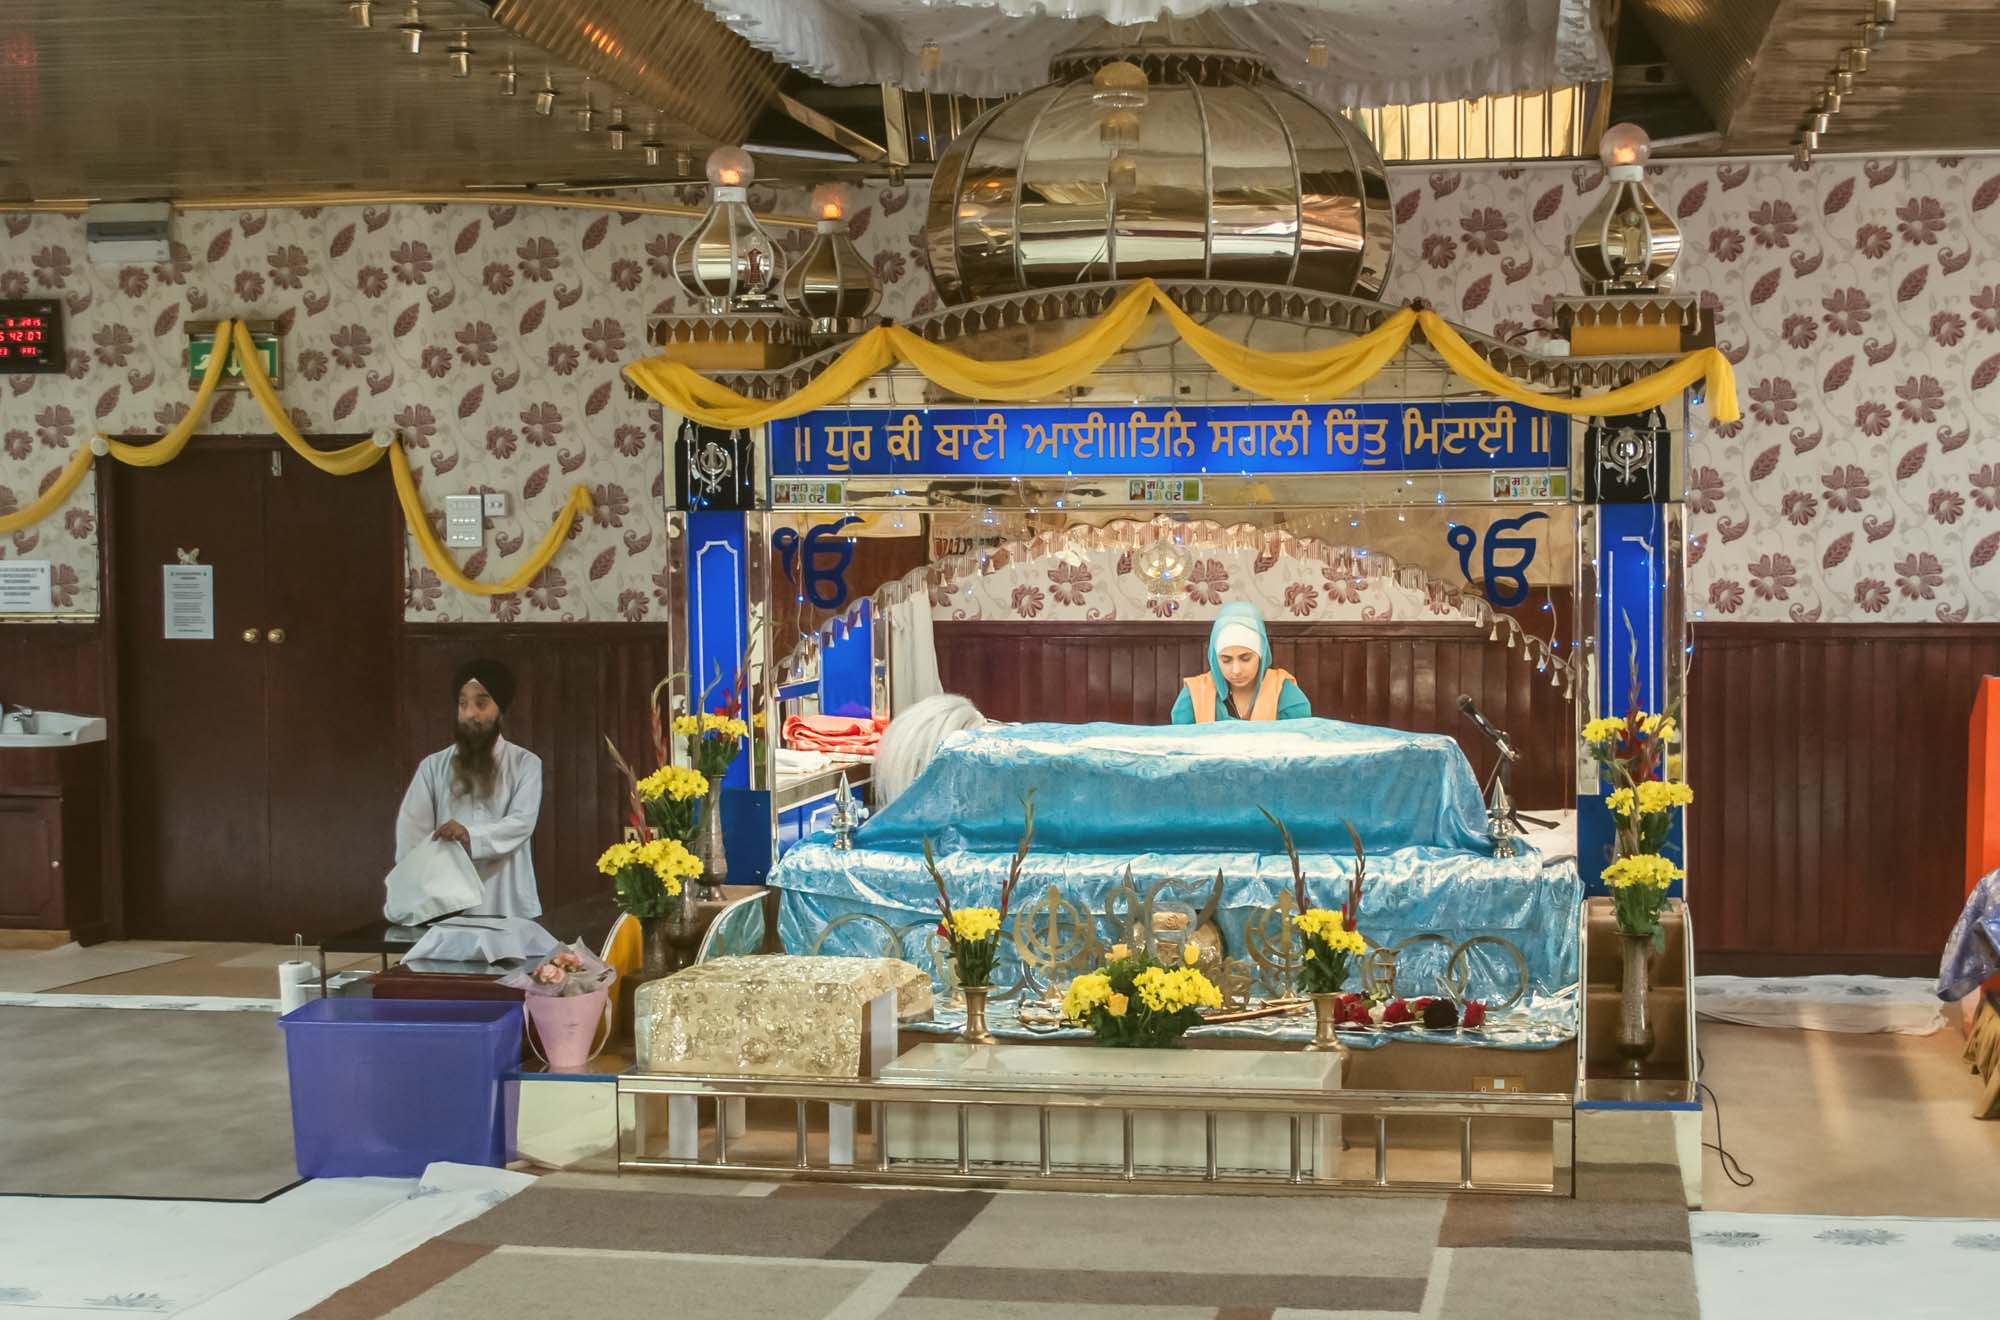 Inside the Guru Nanak Gurdwara, Leicester. Places of worship play a central role in many of the communities in the city -